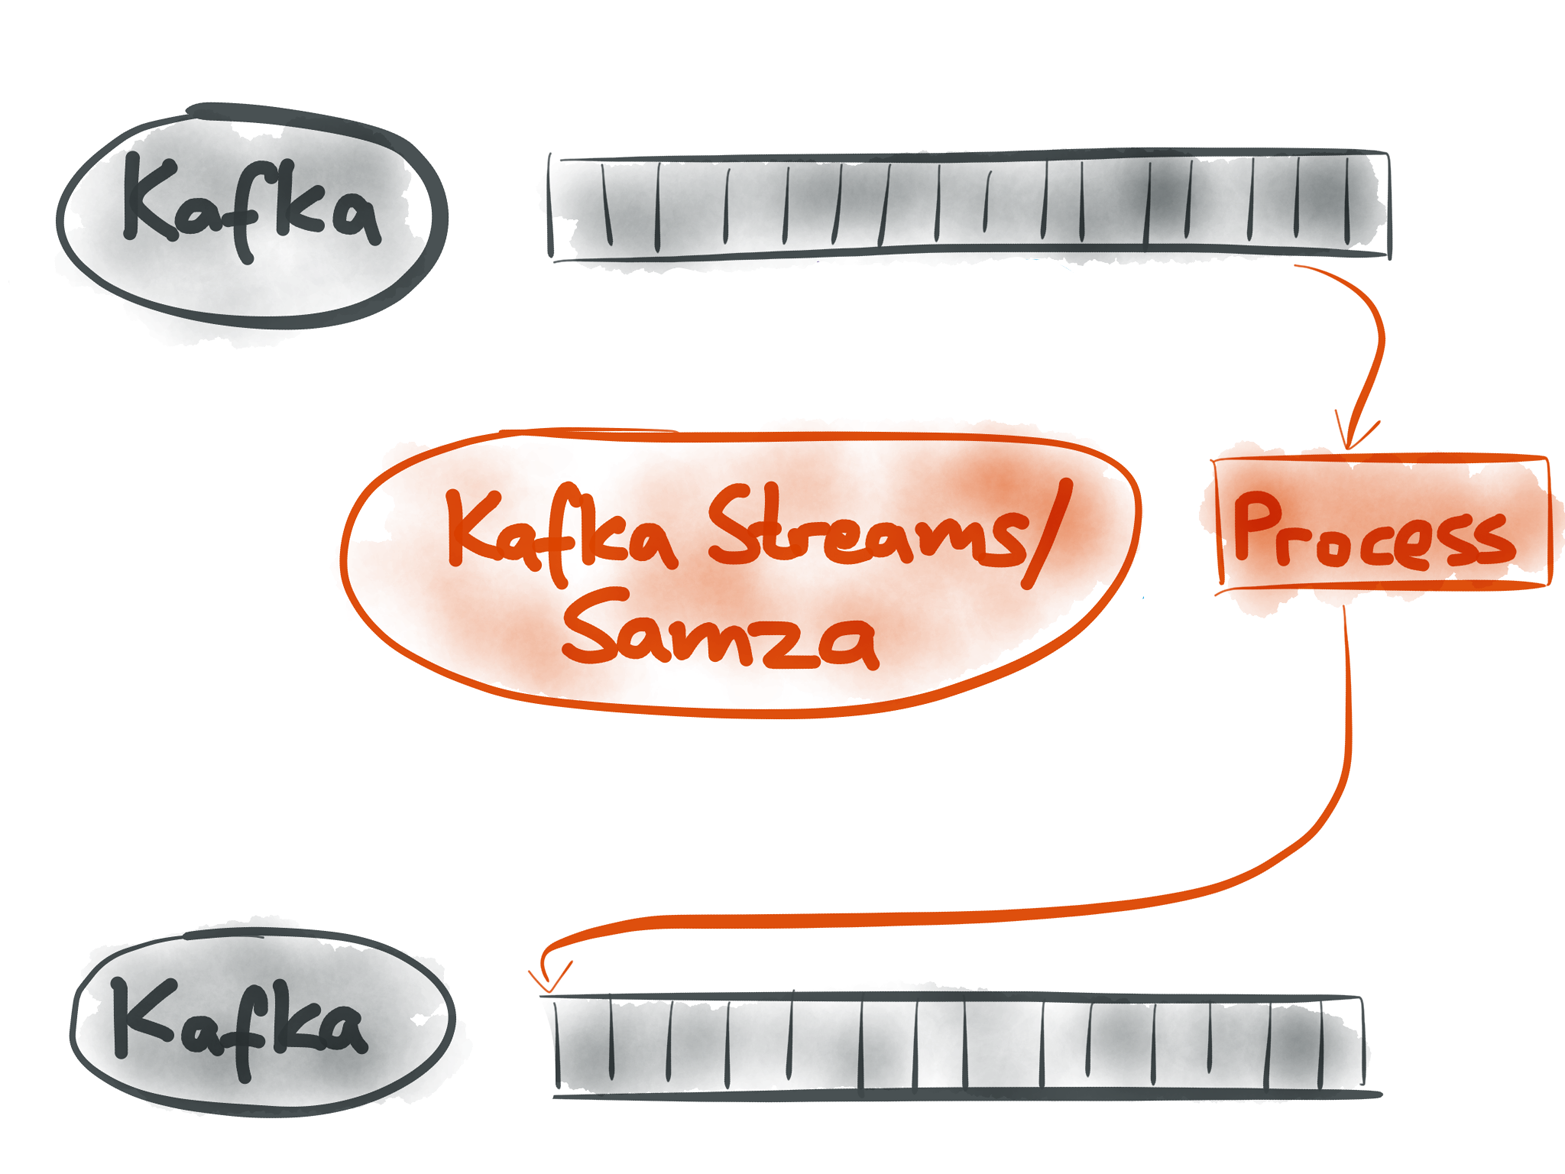 Apache Kafka is a good implementation of event streams, and tools like Kafka Streams or Apache Samza can be used to process those streams.